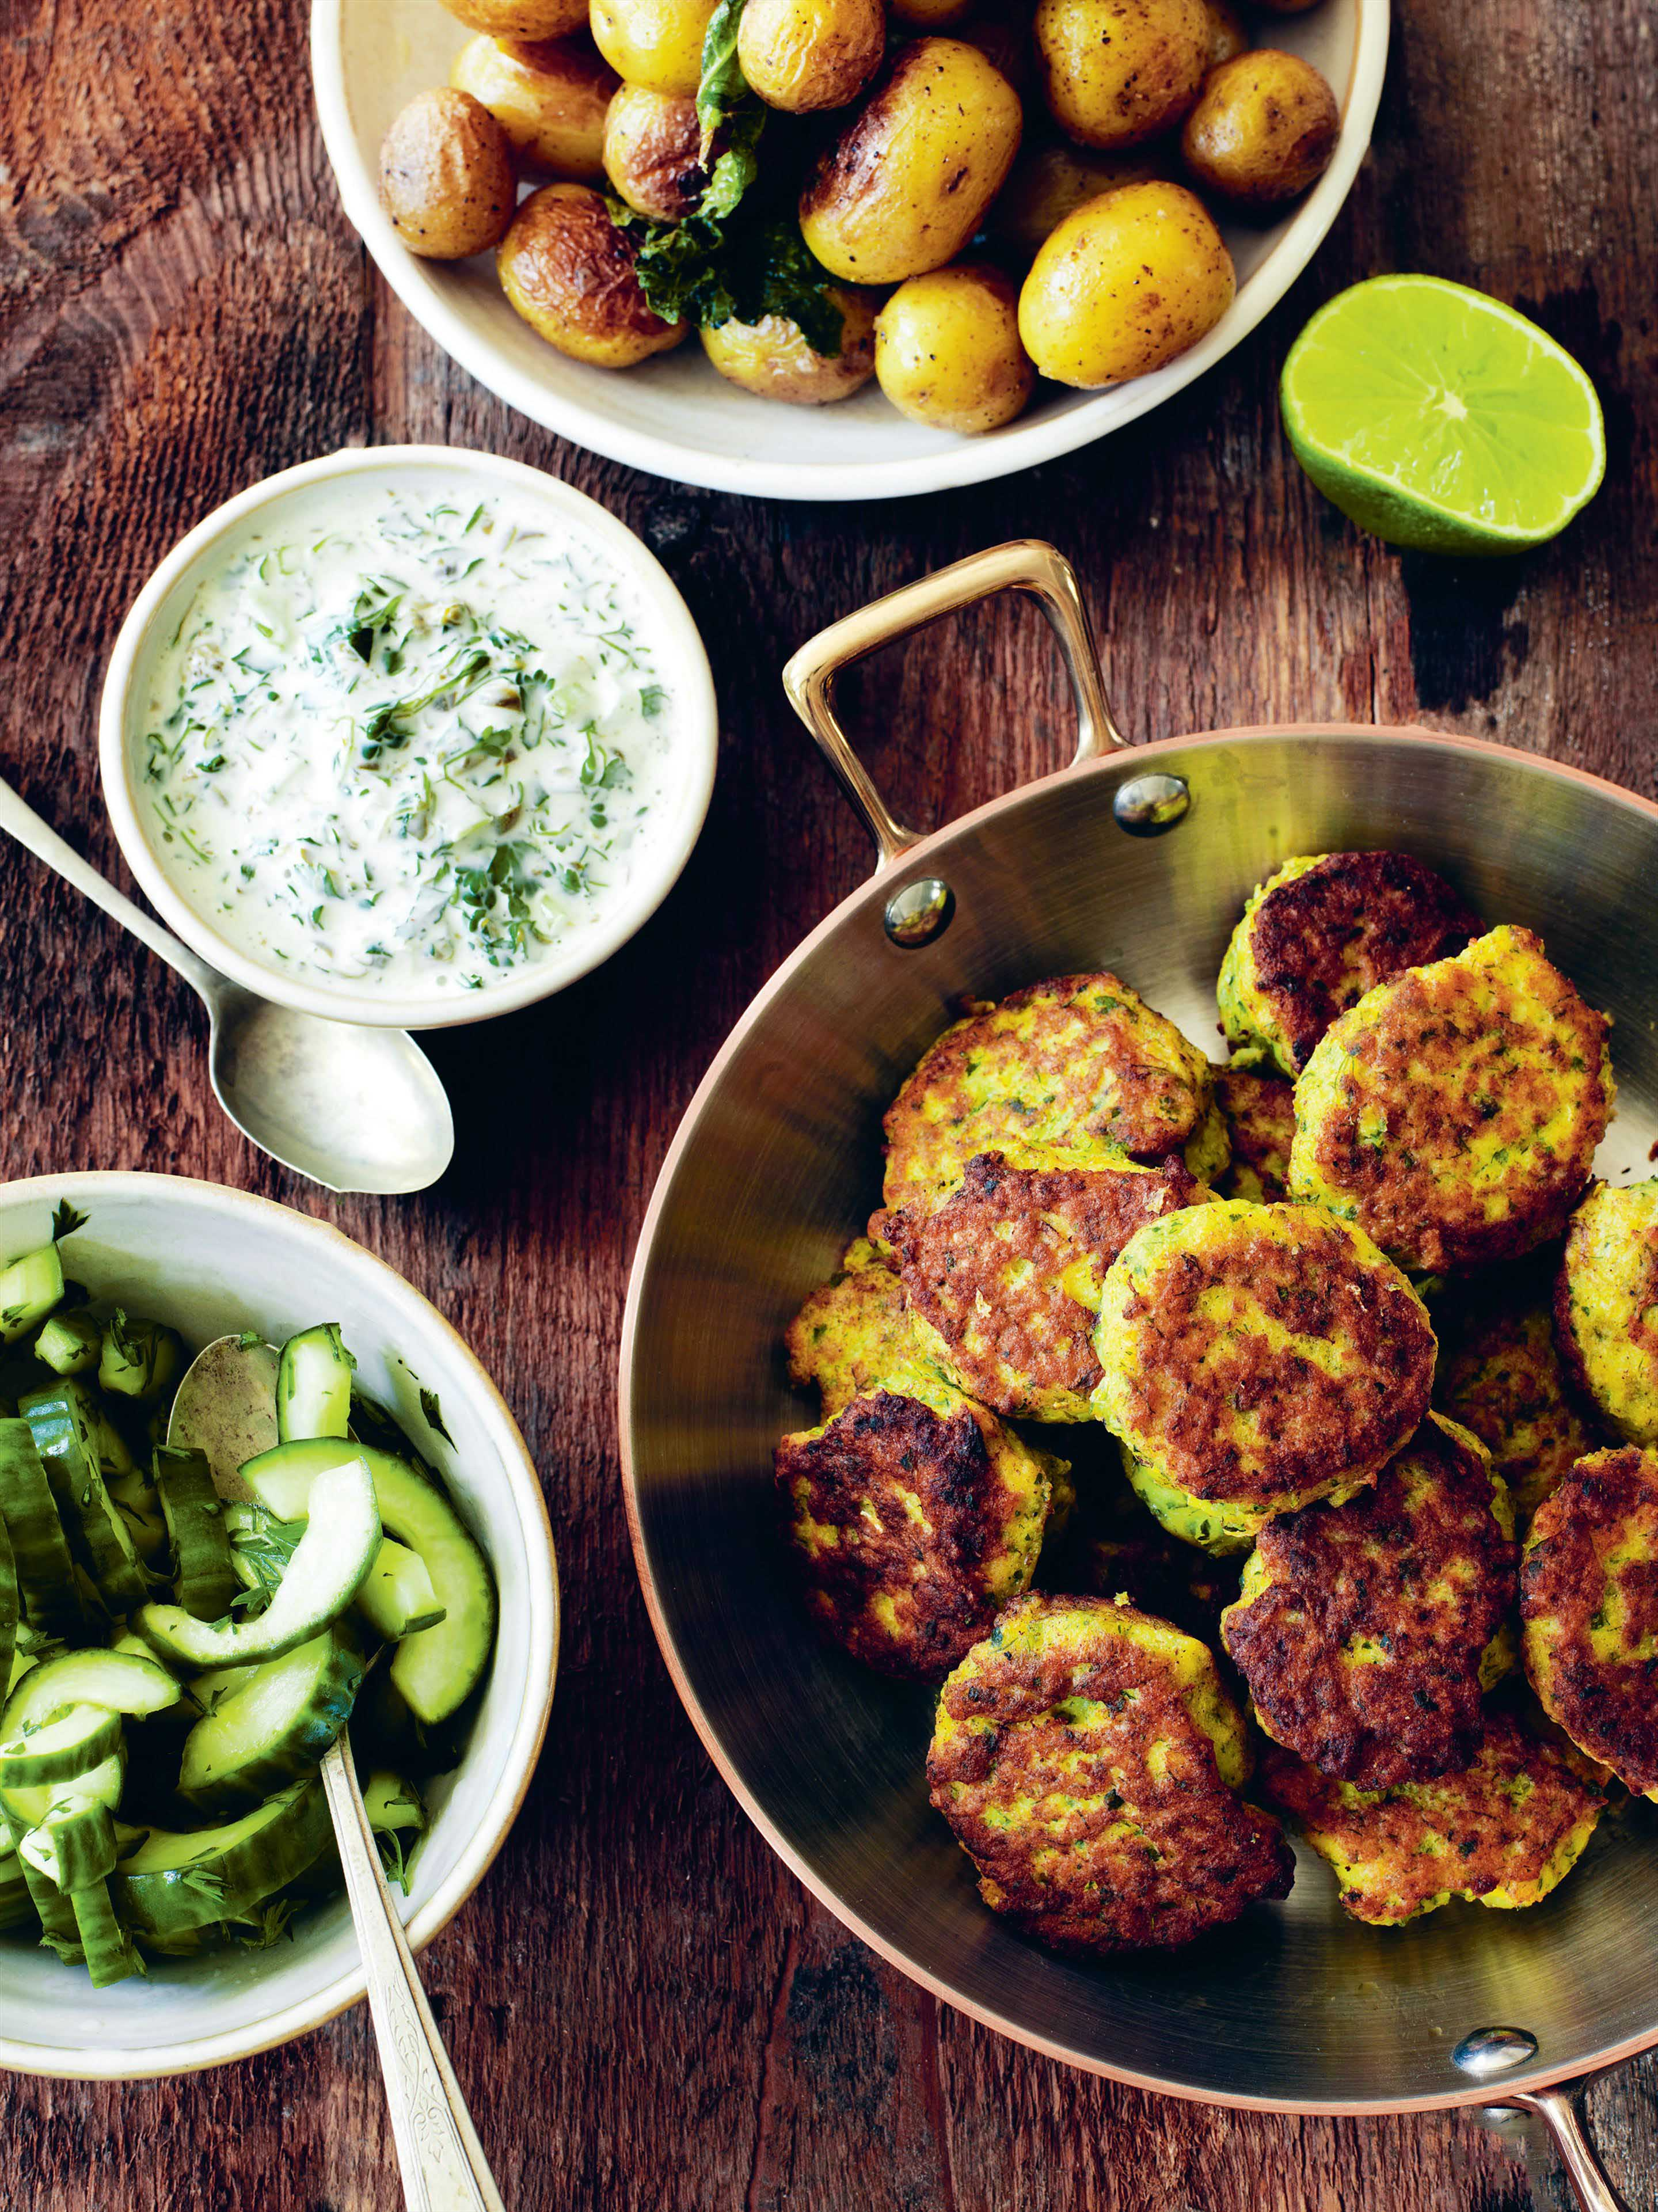 Fishcakes with herb sauce and mint fried potatoes